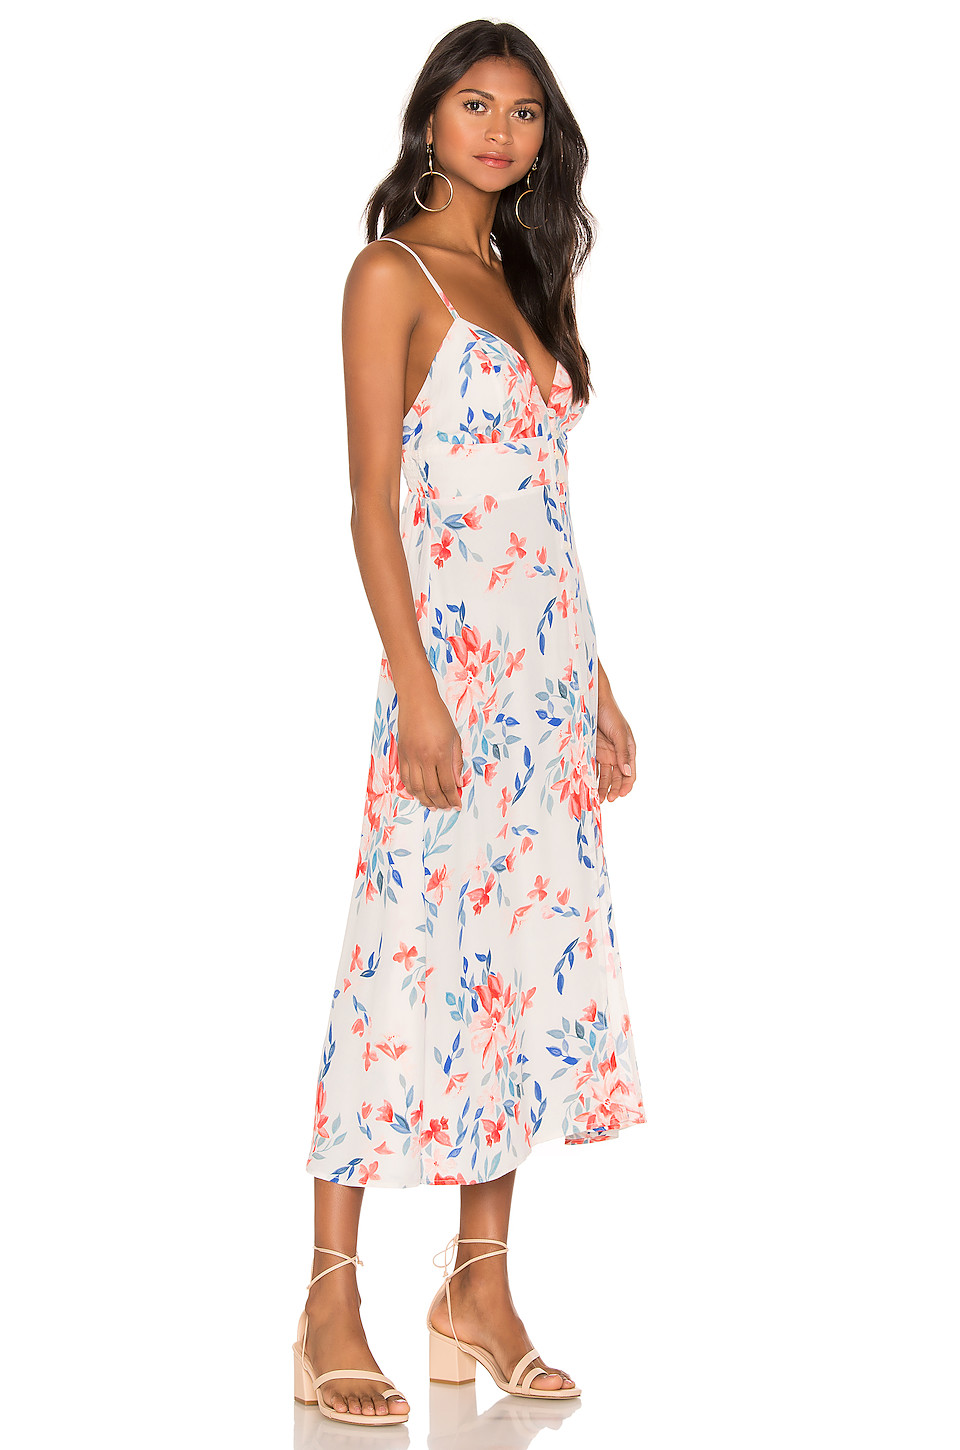 Cleobella Estelle Dress